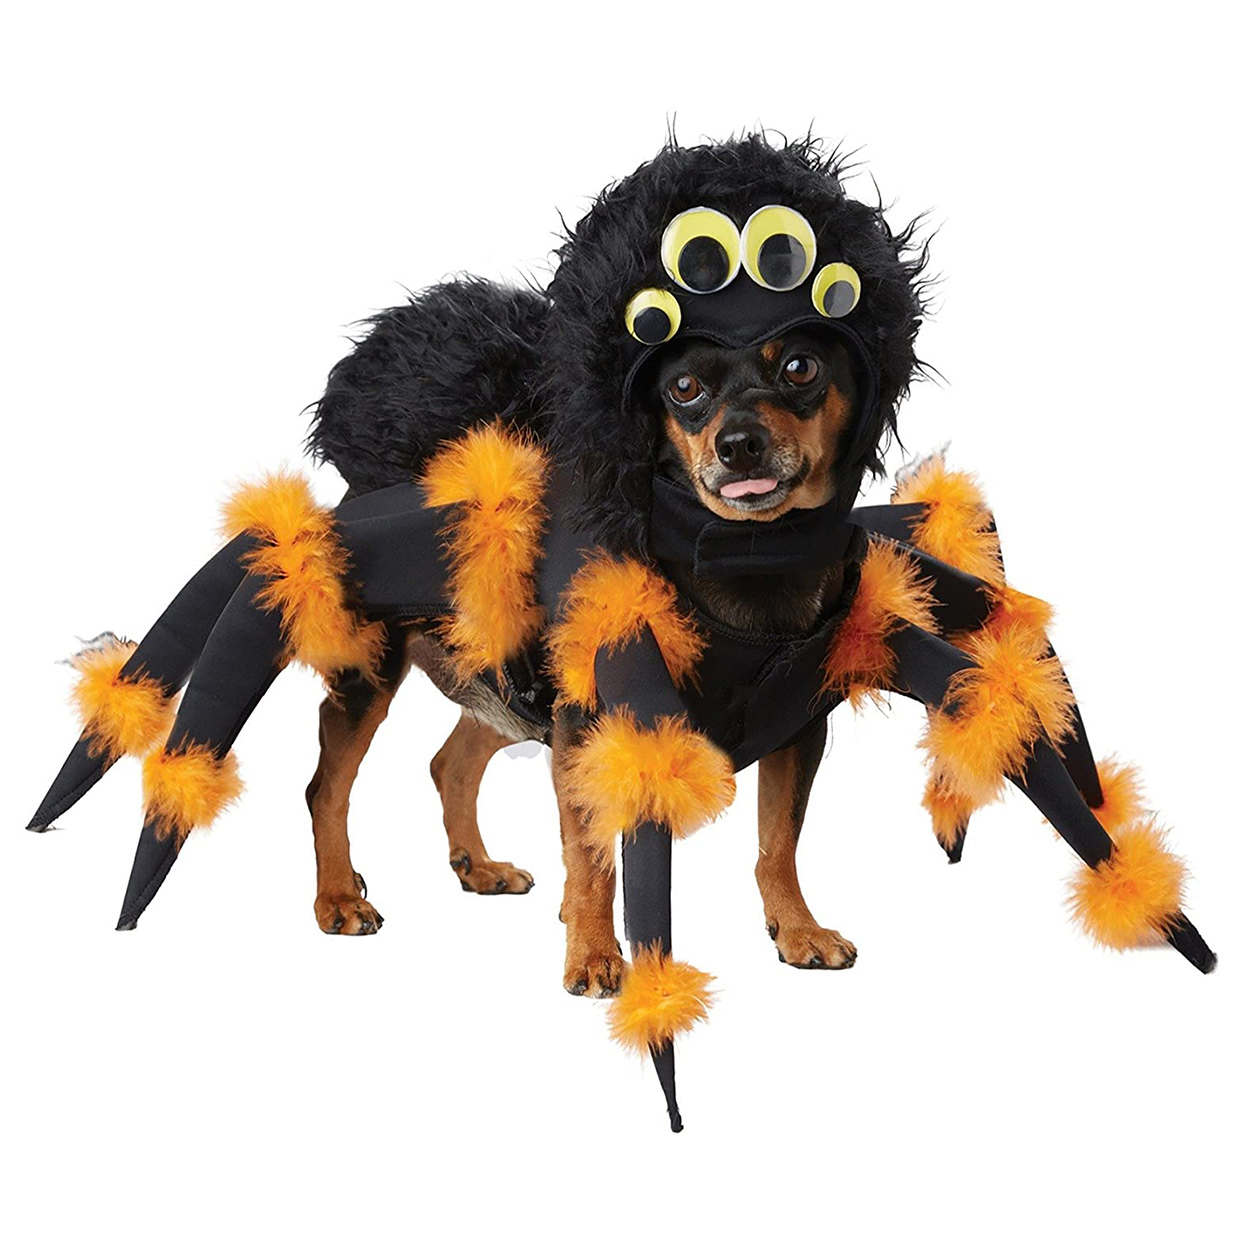 Dog wearing the California Costumes Pet Spider Dog Costume on a white background